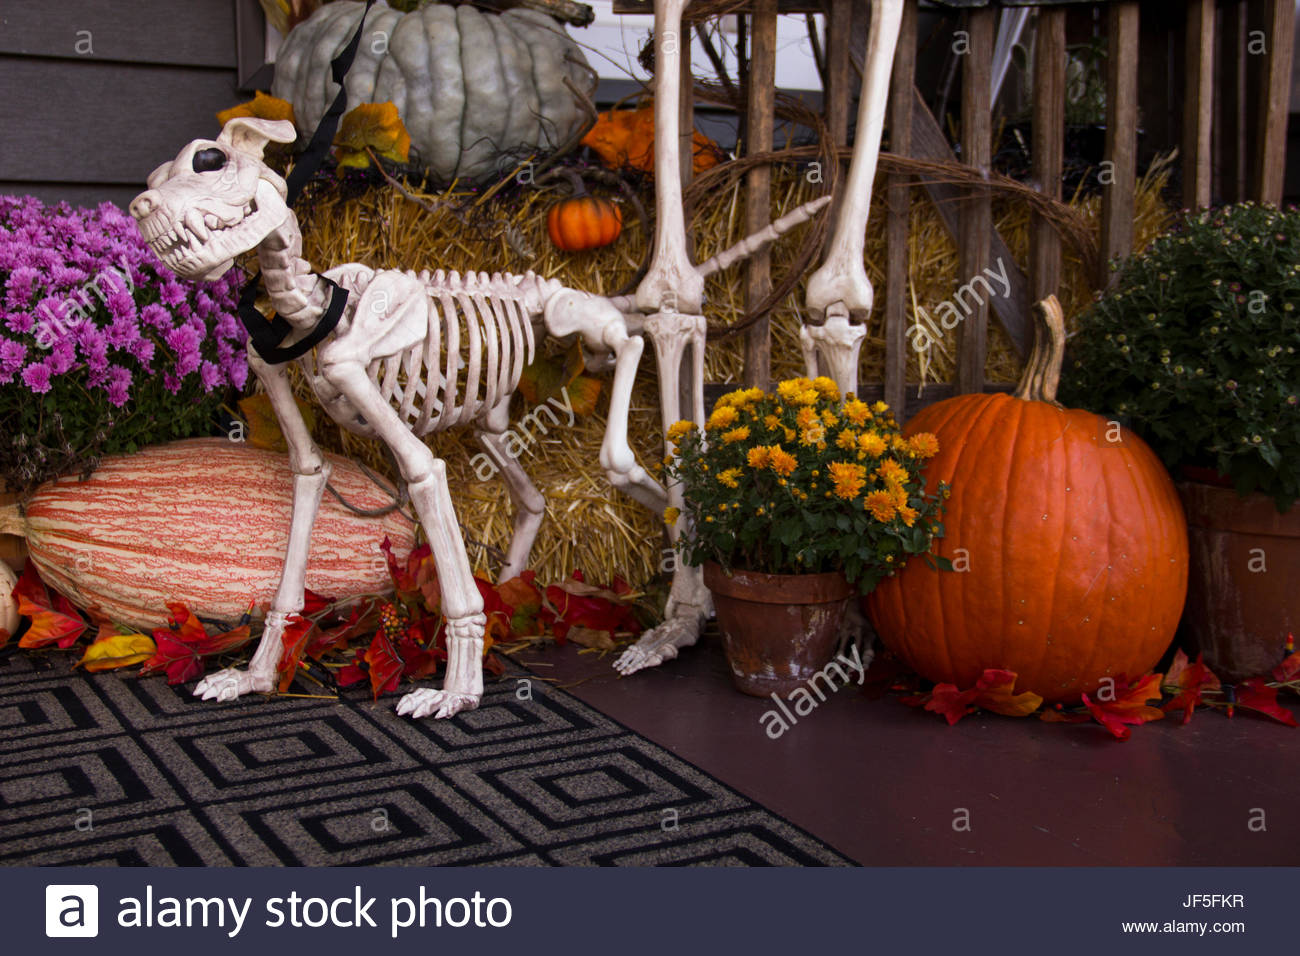 halloween decorations include a hungry looking dog skeleton